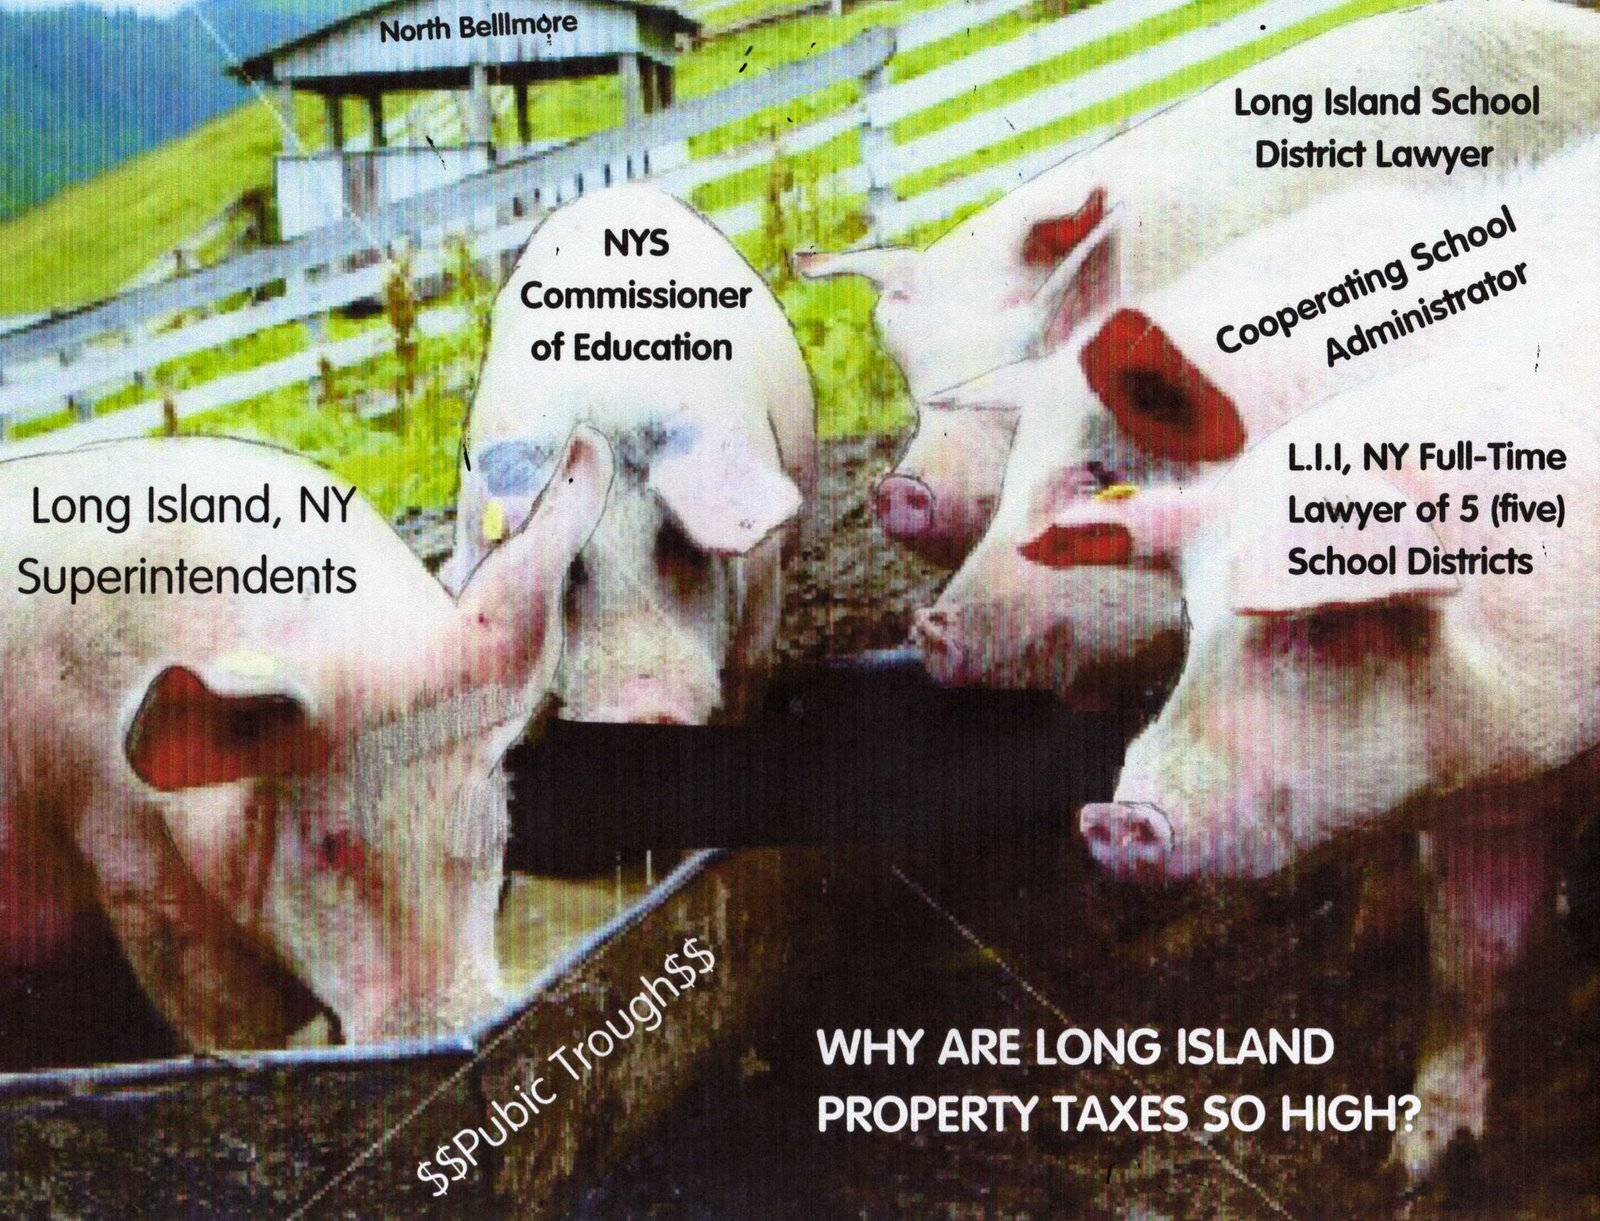 WHY ARE PROPERTY TAXES SO HIGH?